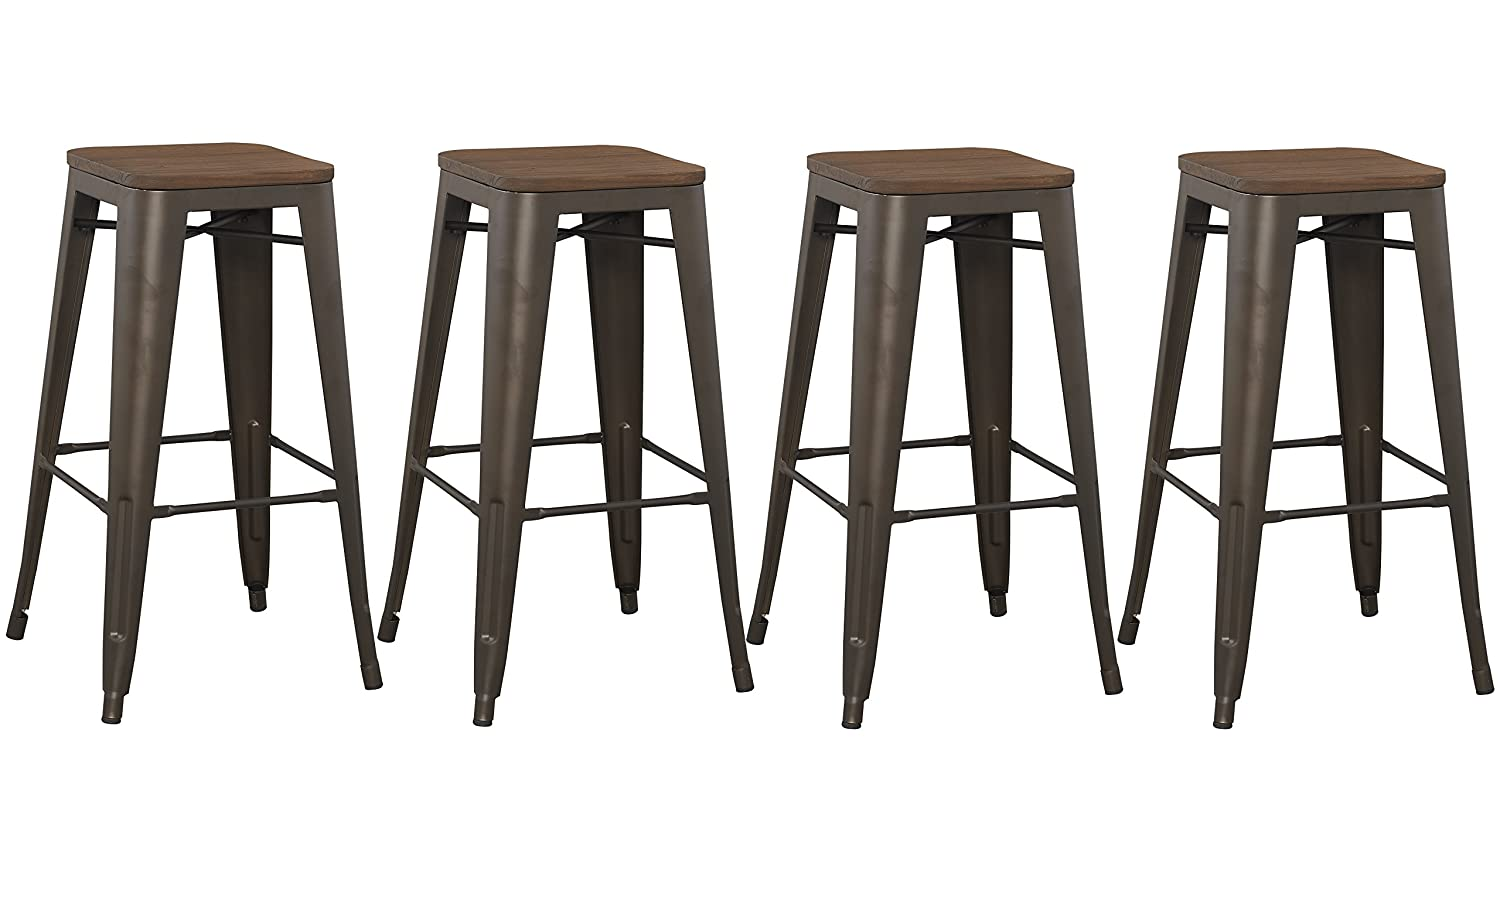 Terrific Btexpert 30 Inch Bar Stool Modern Solid Steel Stacking Industrial Rustic Metal With Wood Top Set Of 4 Theyellowbook Wood Chair Design Ideas Theyellowbookinfo